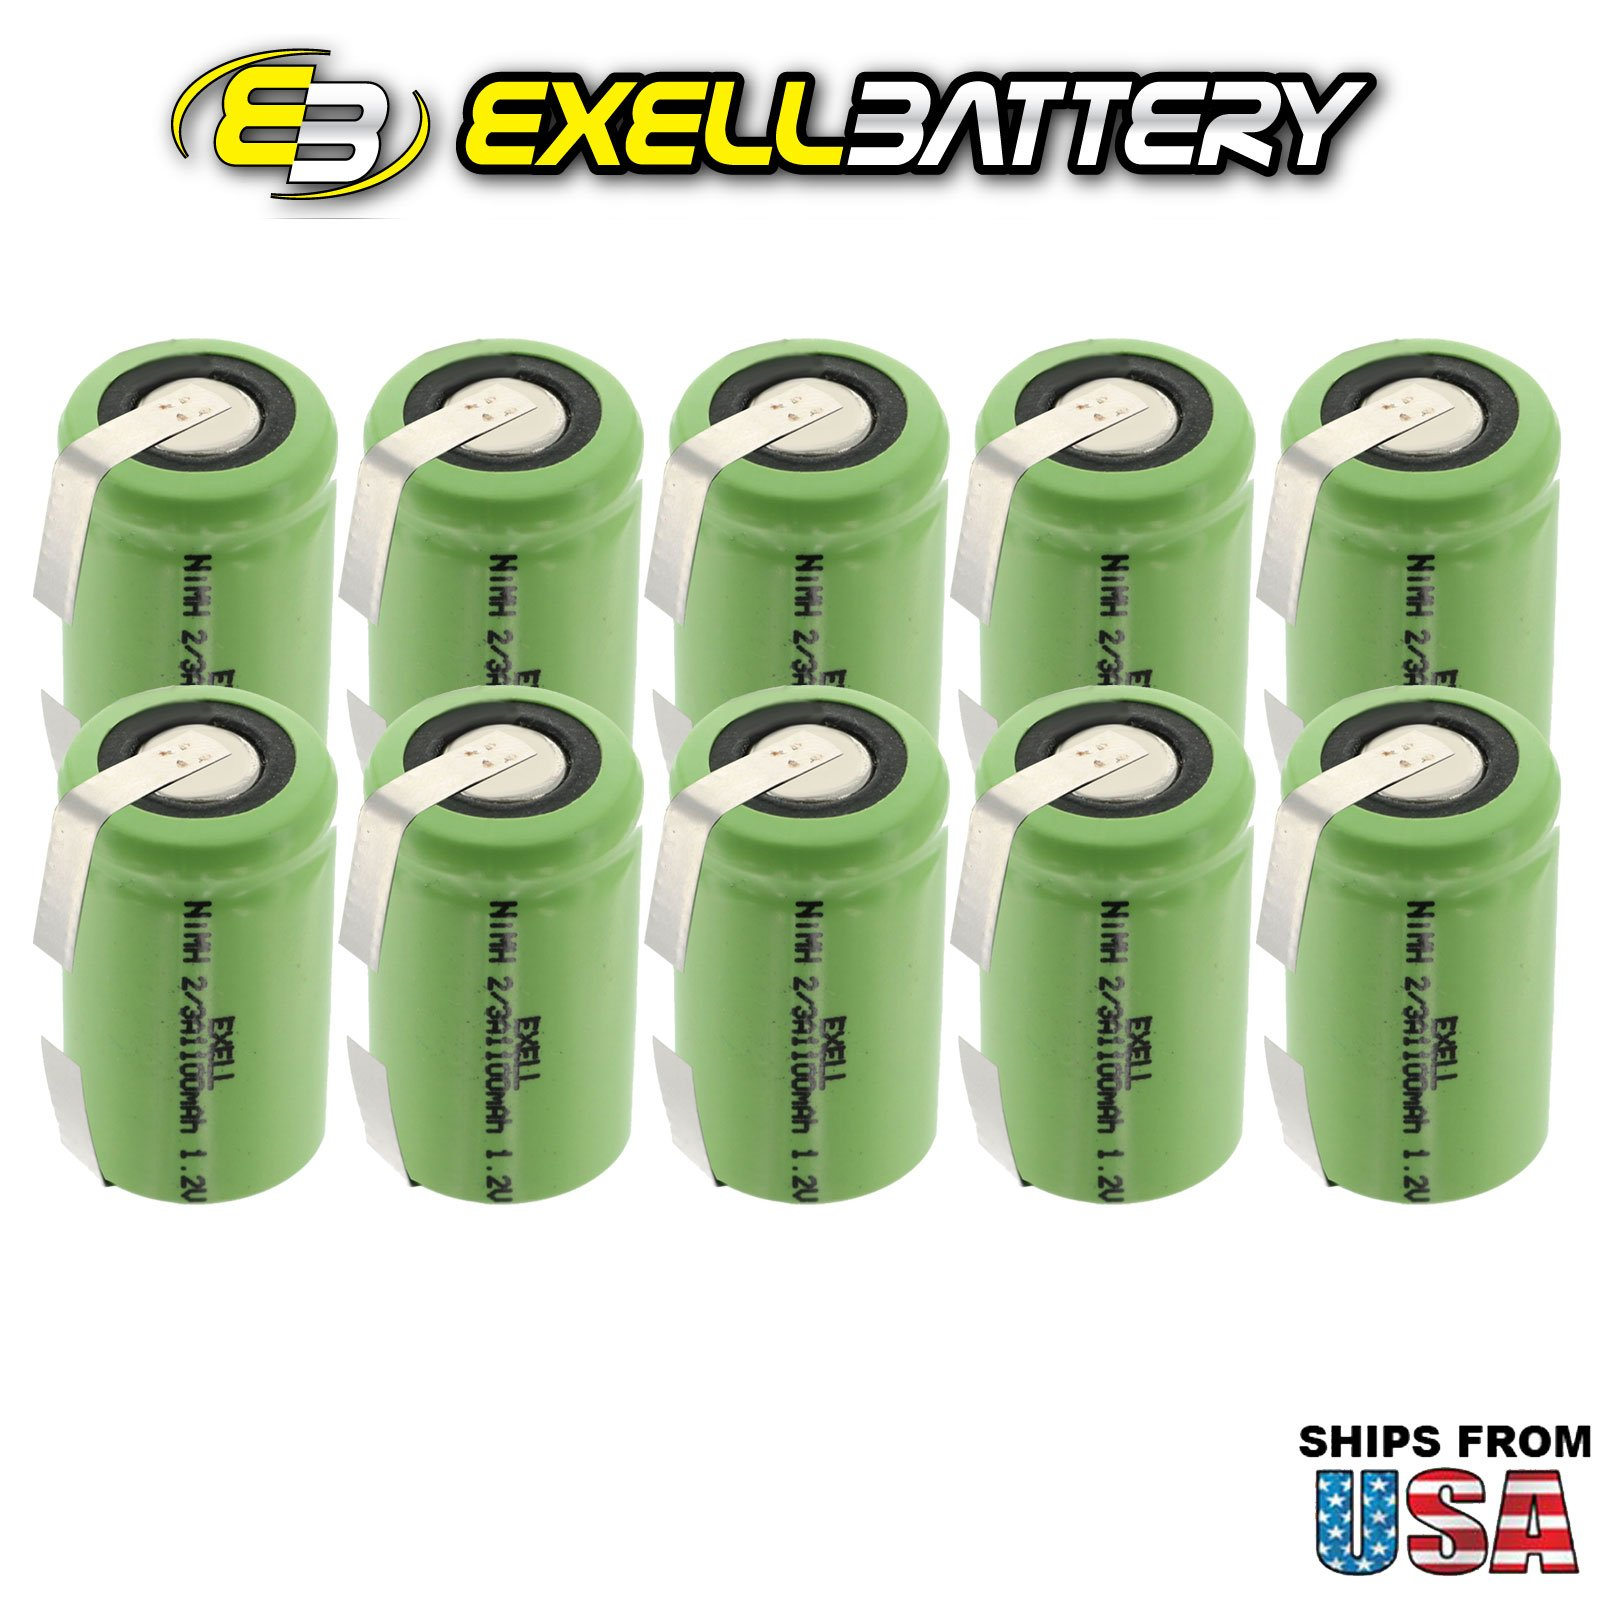 10x Exell 2/3A Size 1.2V 1100mAh NiMH Rechargeable Batteries w/Tabs use with high power static applications (Telecoms UPS and Smart grid) radio controlled devices electric tools electric mopeds